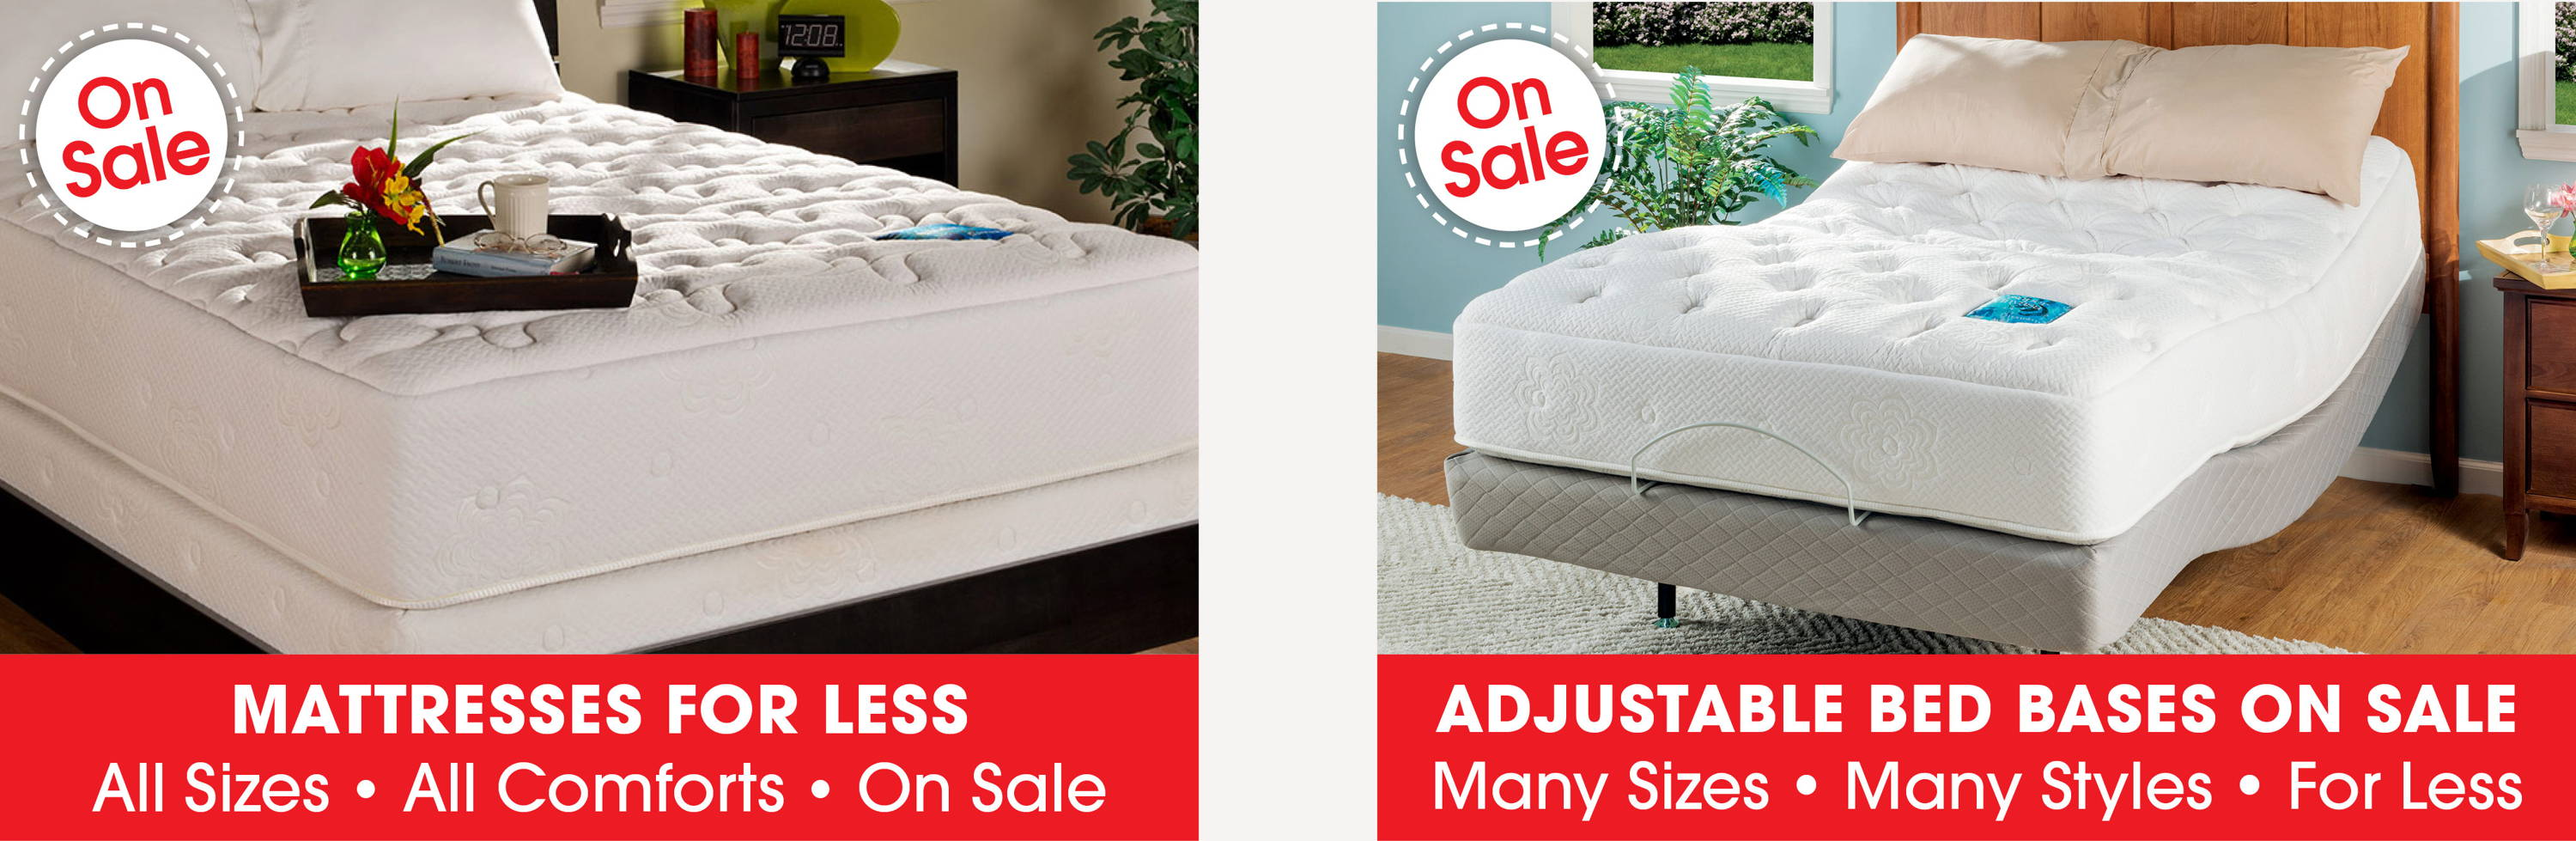 City Mattress Clearance Centers   City Mattress